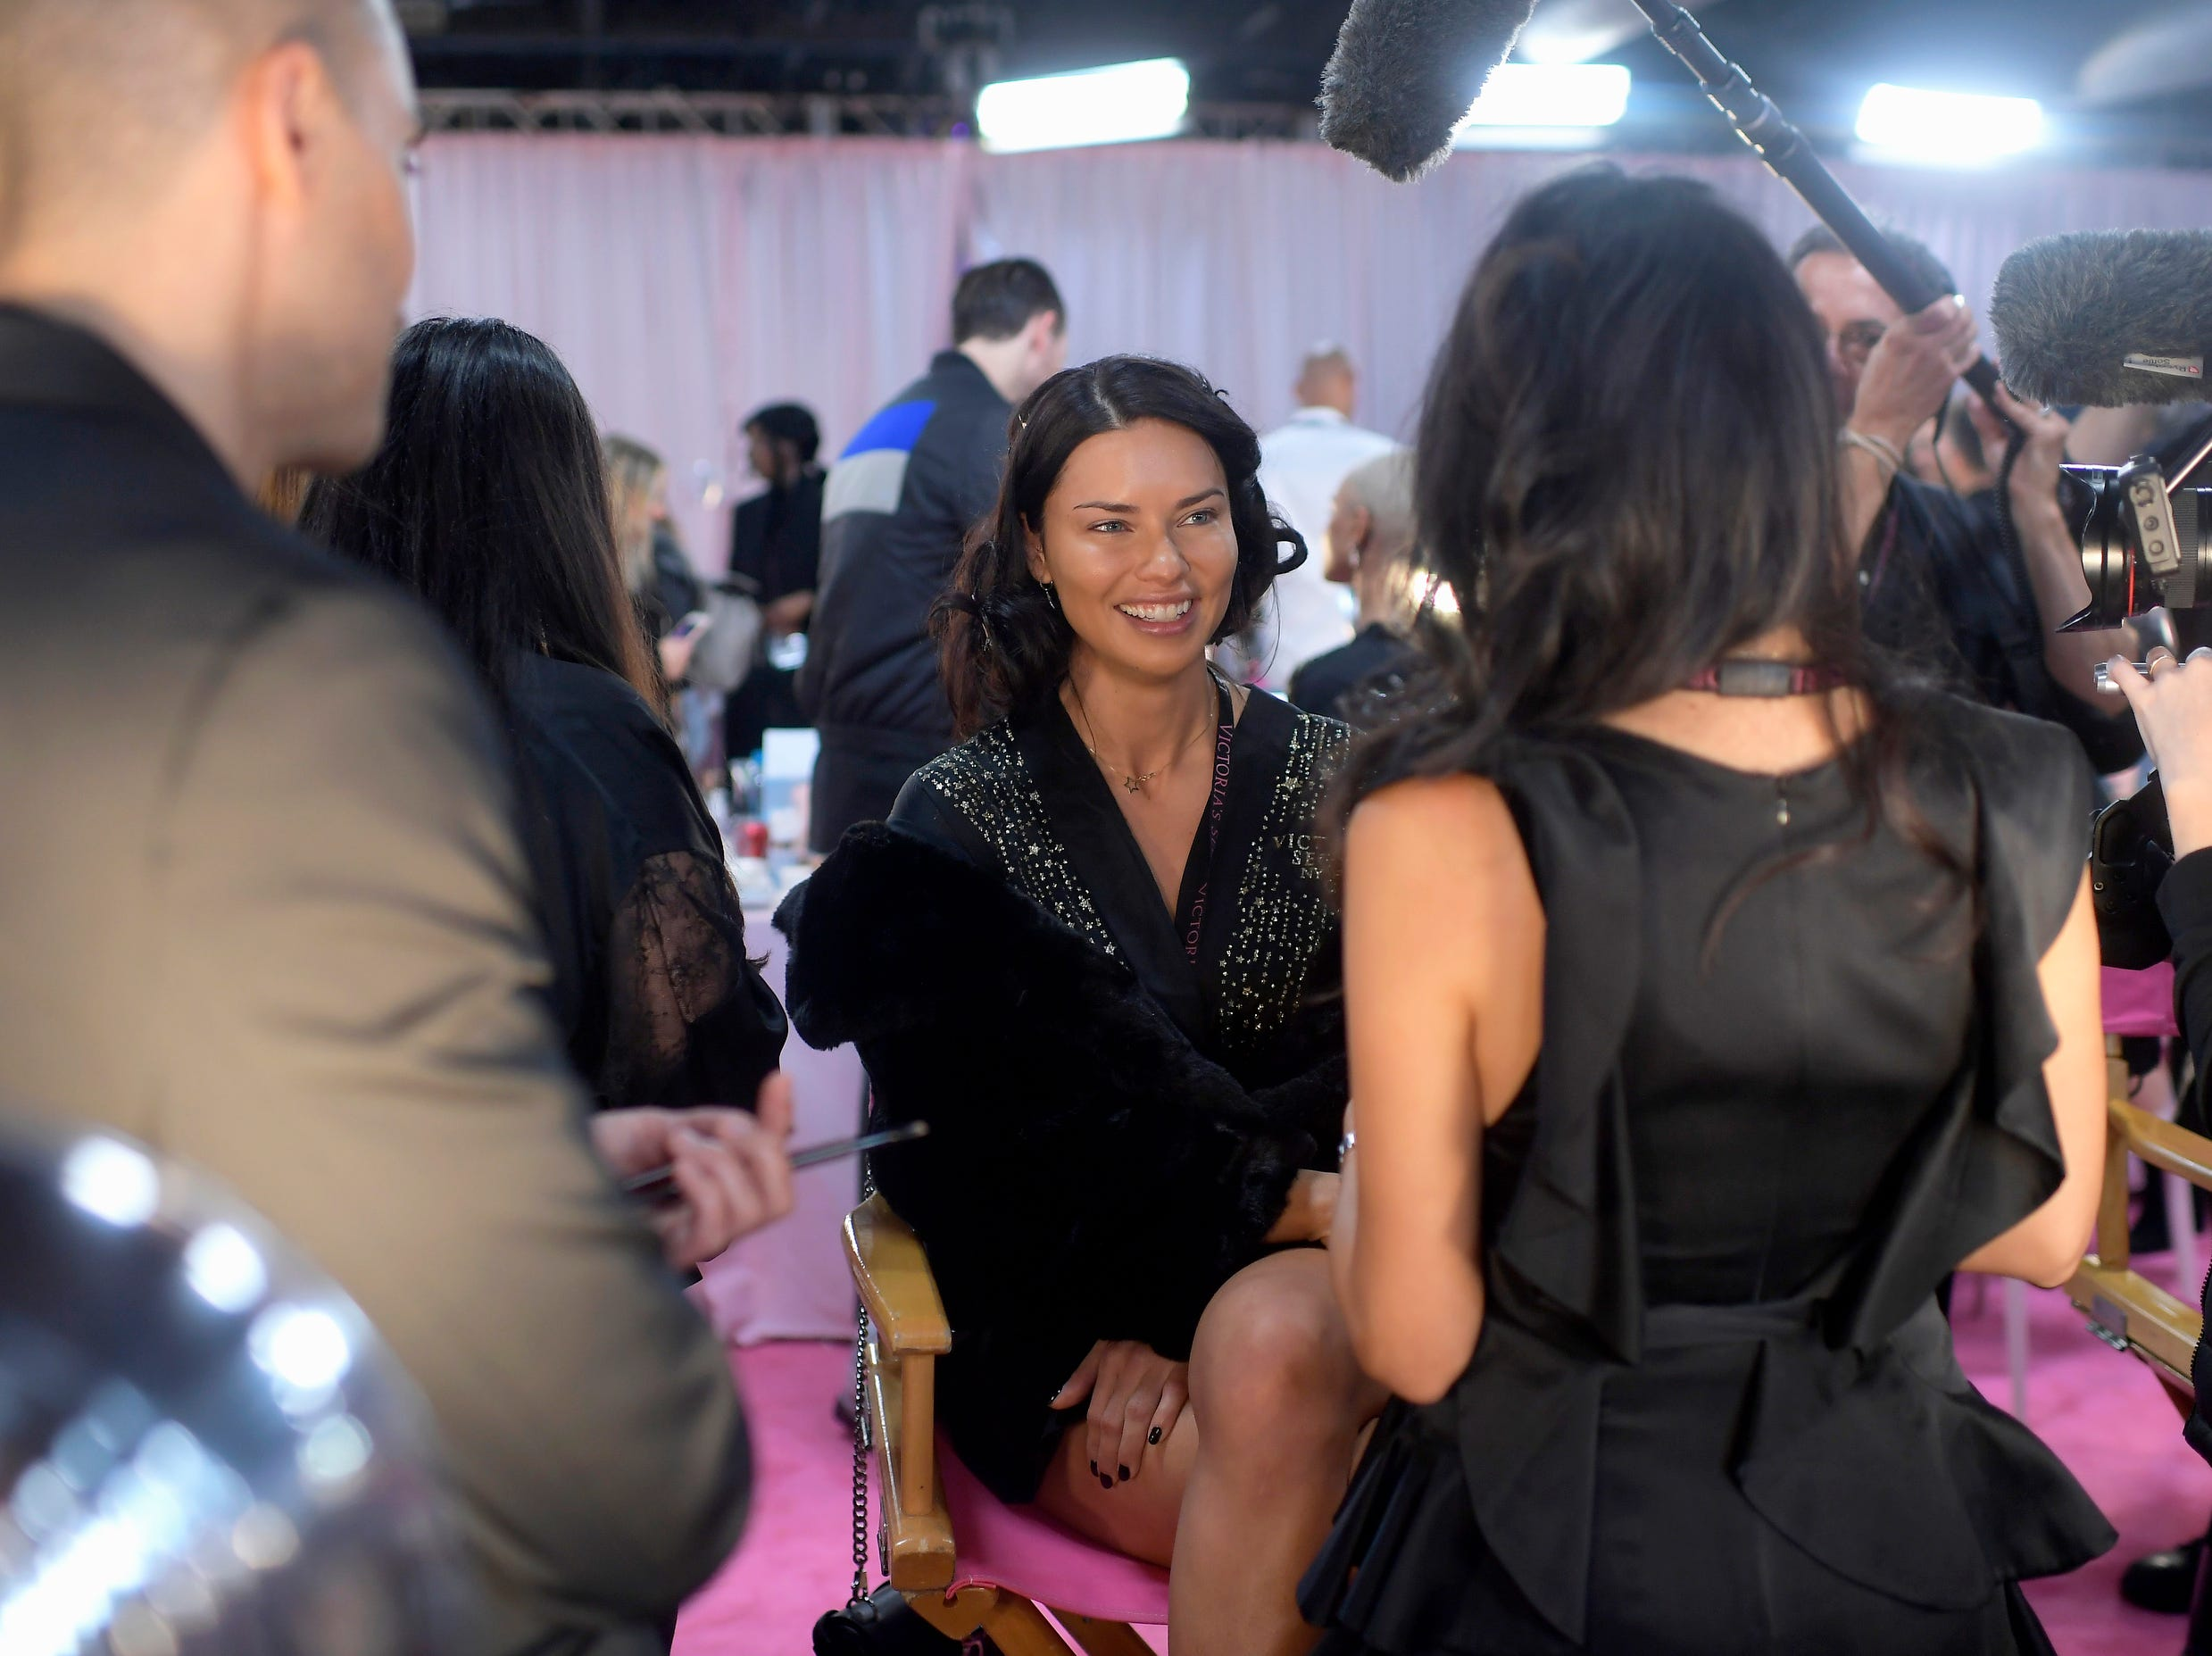 Veteran Victoria's Secret Angel Adriana Lima takes media questions backstage.